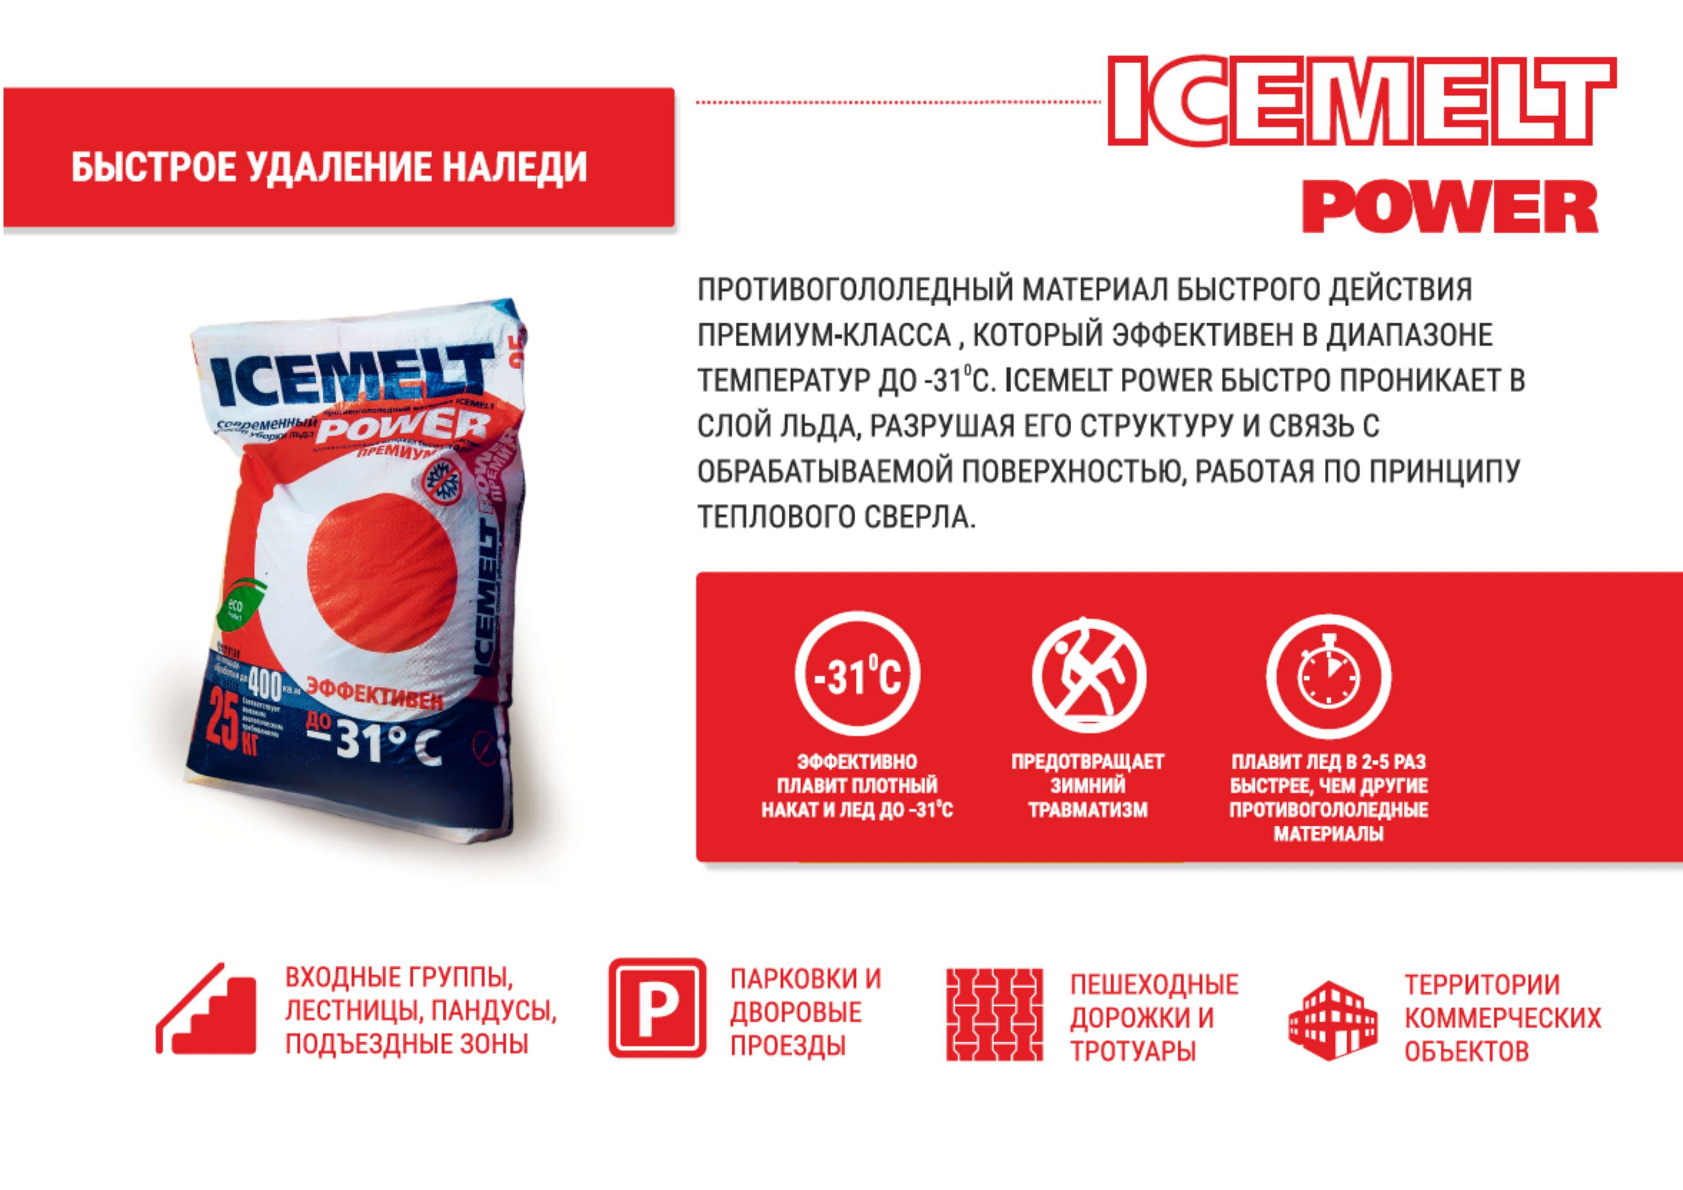 ICEMELT POWER